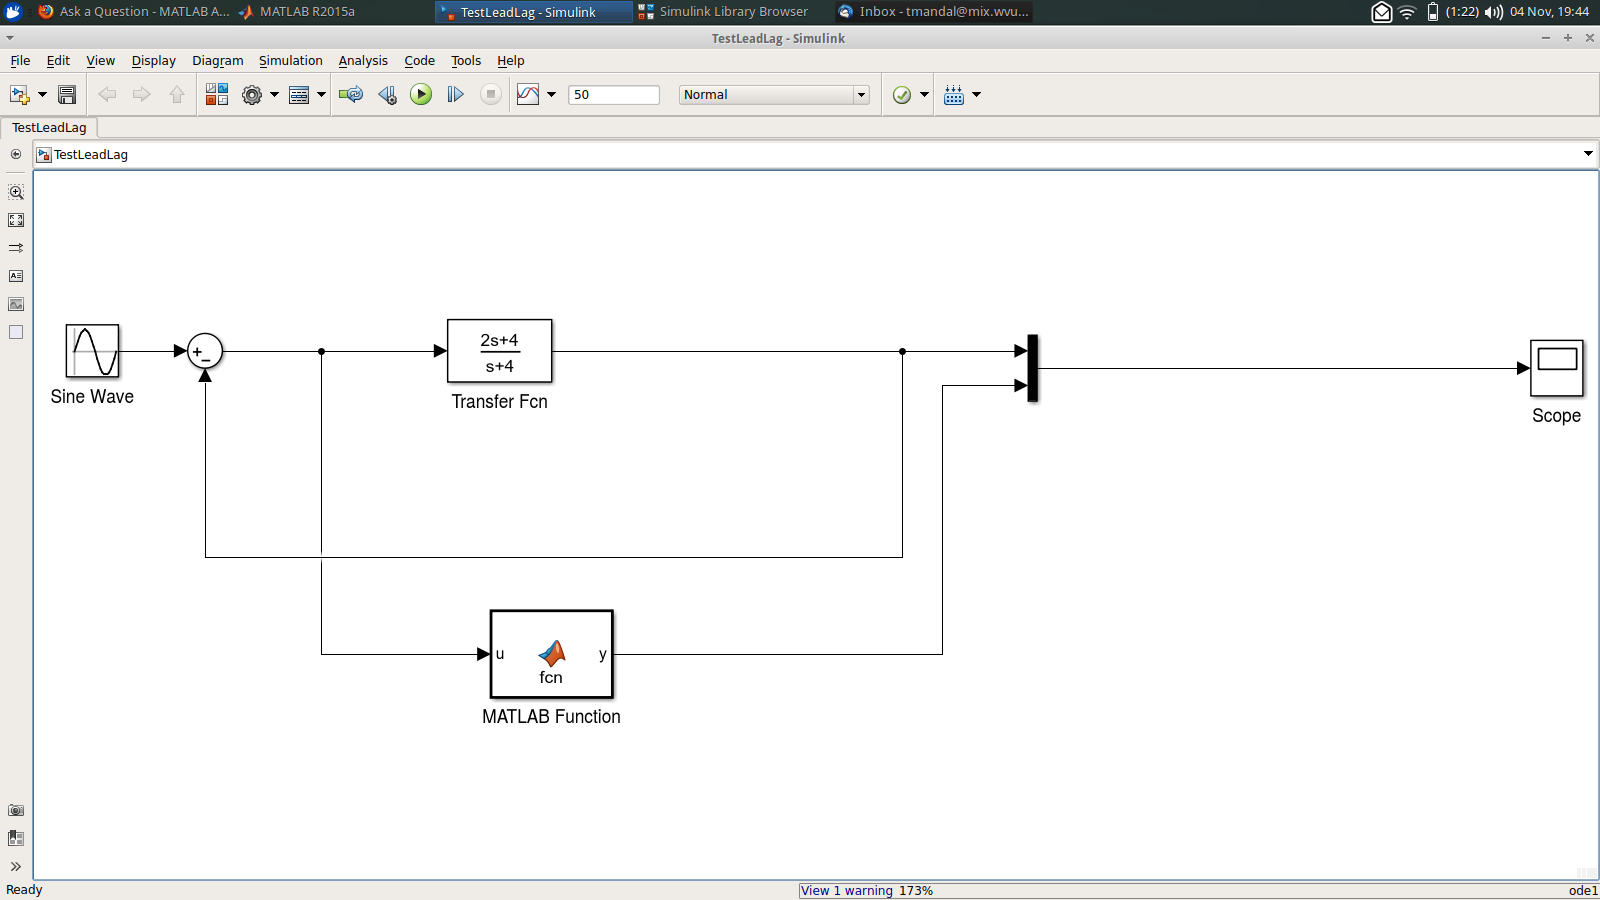 how does simulink simulate transfer function? matlab answers transfer function single block user defined function in simulink to calculate my output of the transfer function, i am usimg x(t)=x(t 1) dt*(a*x(t 1) b*u(t)) and then y=c*x(t) d*u(t)